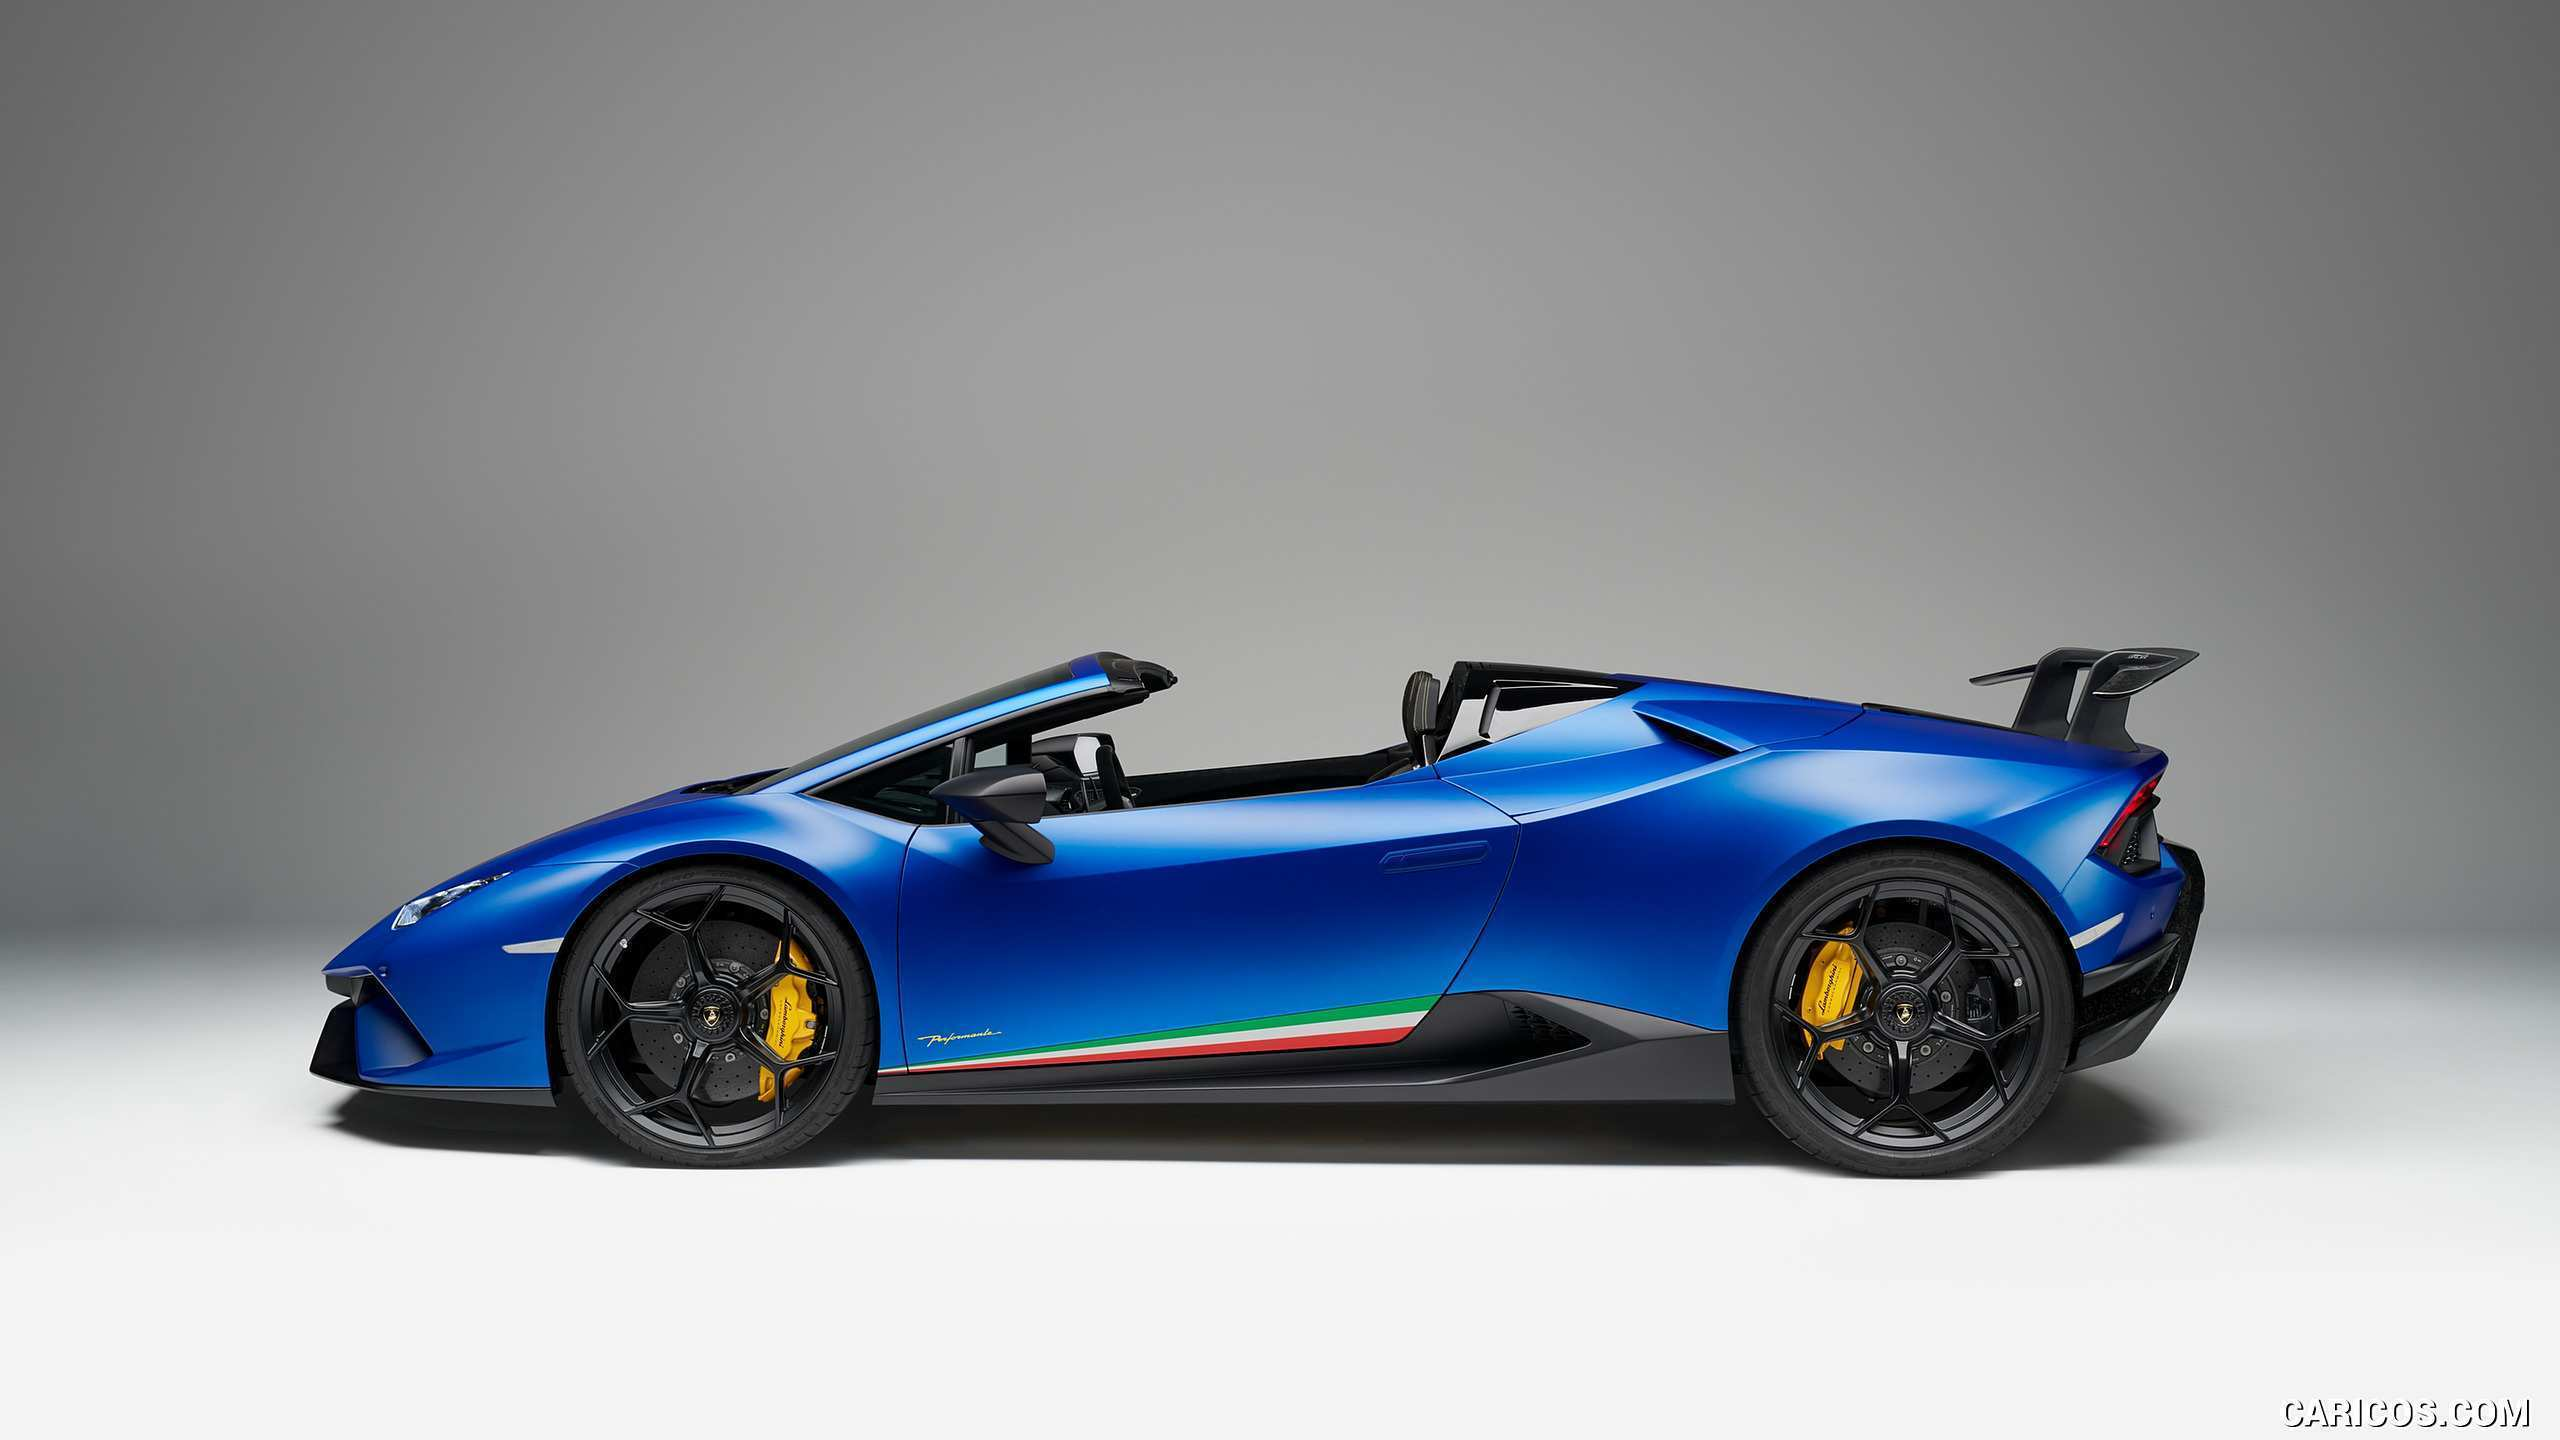 68 All New 2019 Lamborghini Spyder Images with 2019 Lamborghini Spyder